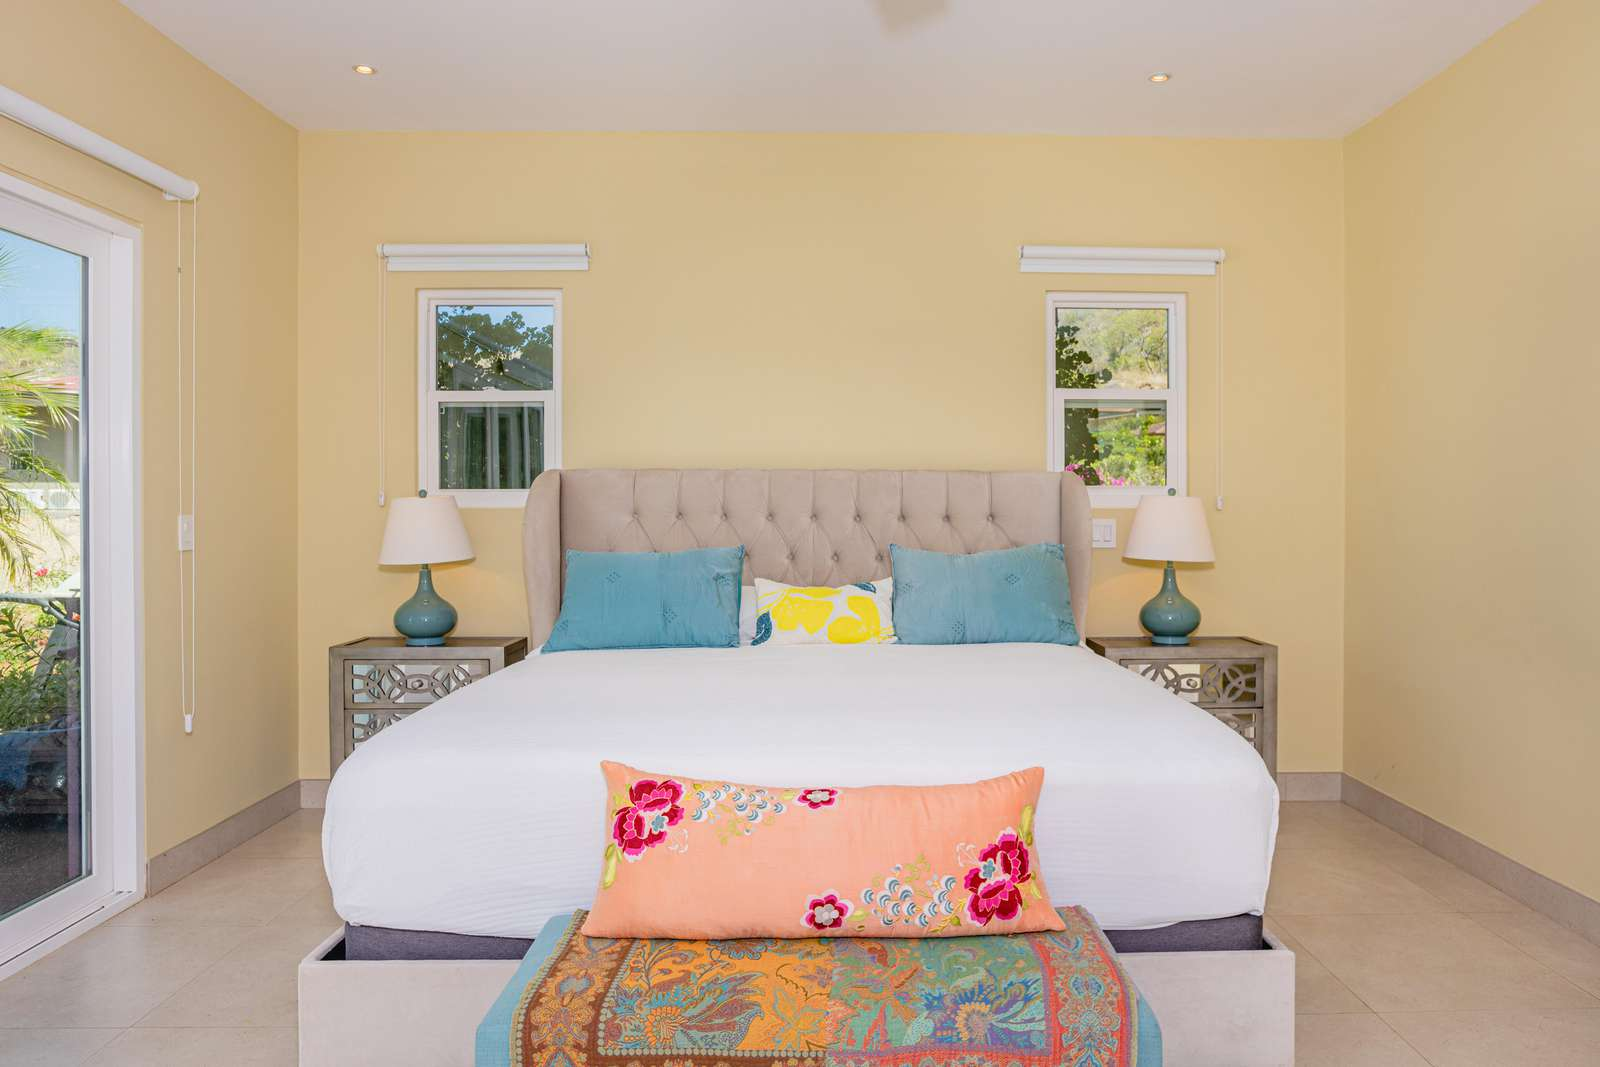 Master Bedroom, King bed, Full private bathroom, access to pool, terrace area